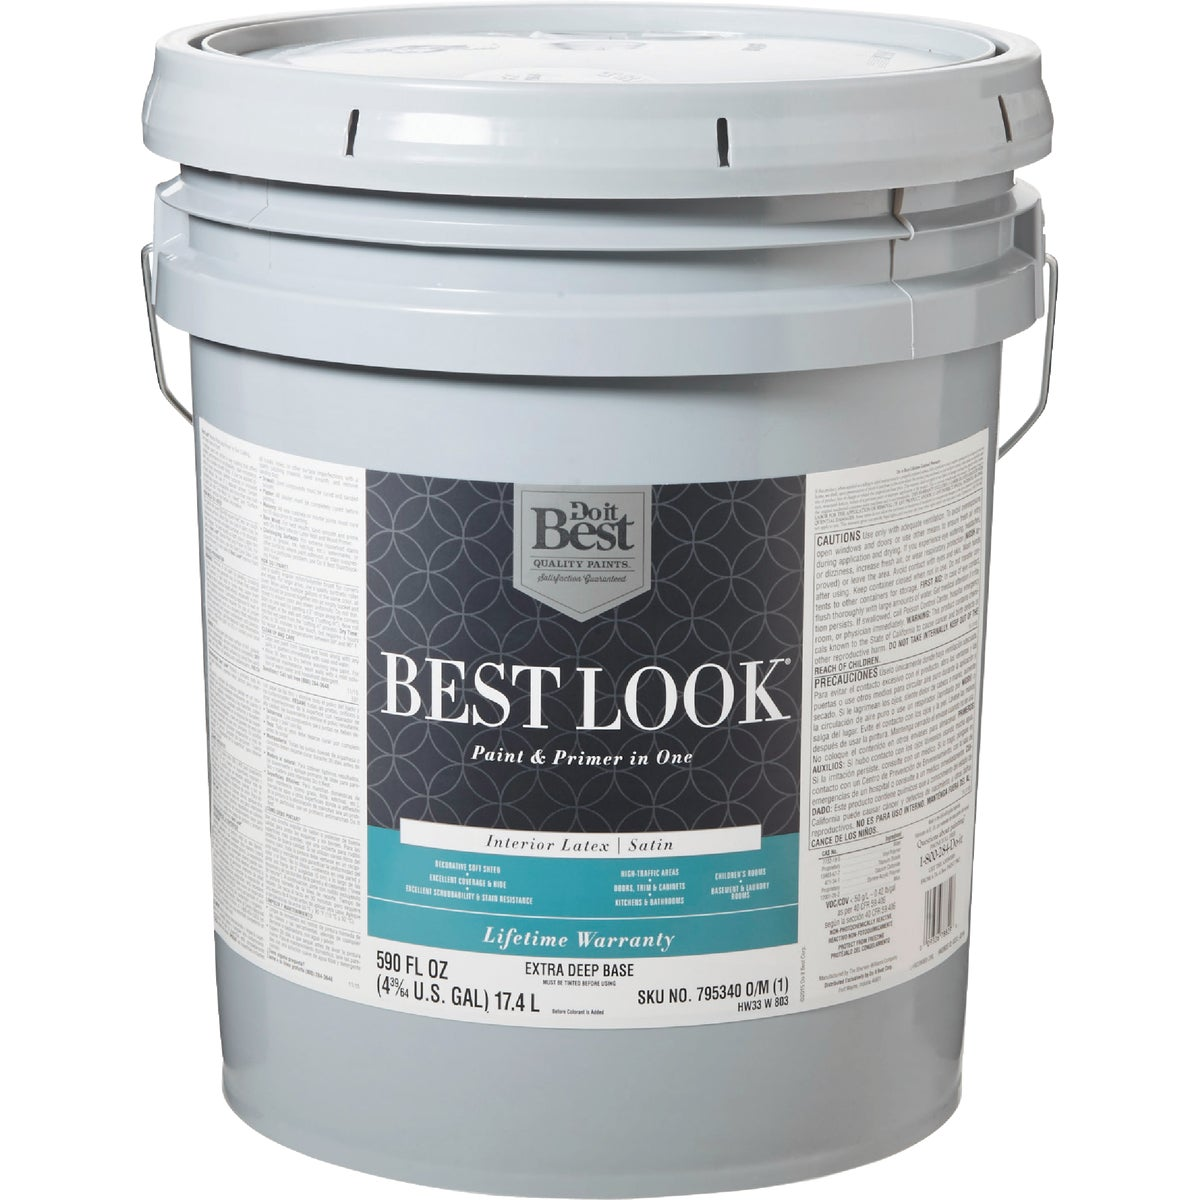 INT SAT EX DEEP BS PAINT - HW33W0803-20 by Do it Best